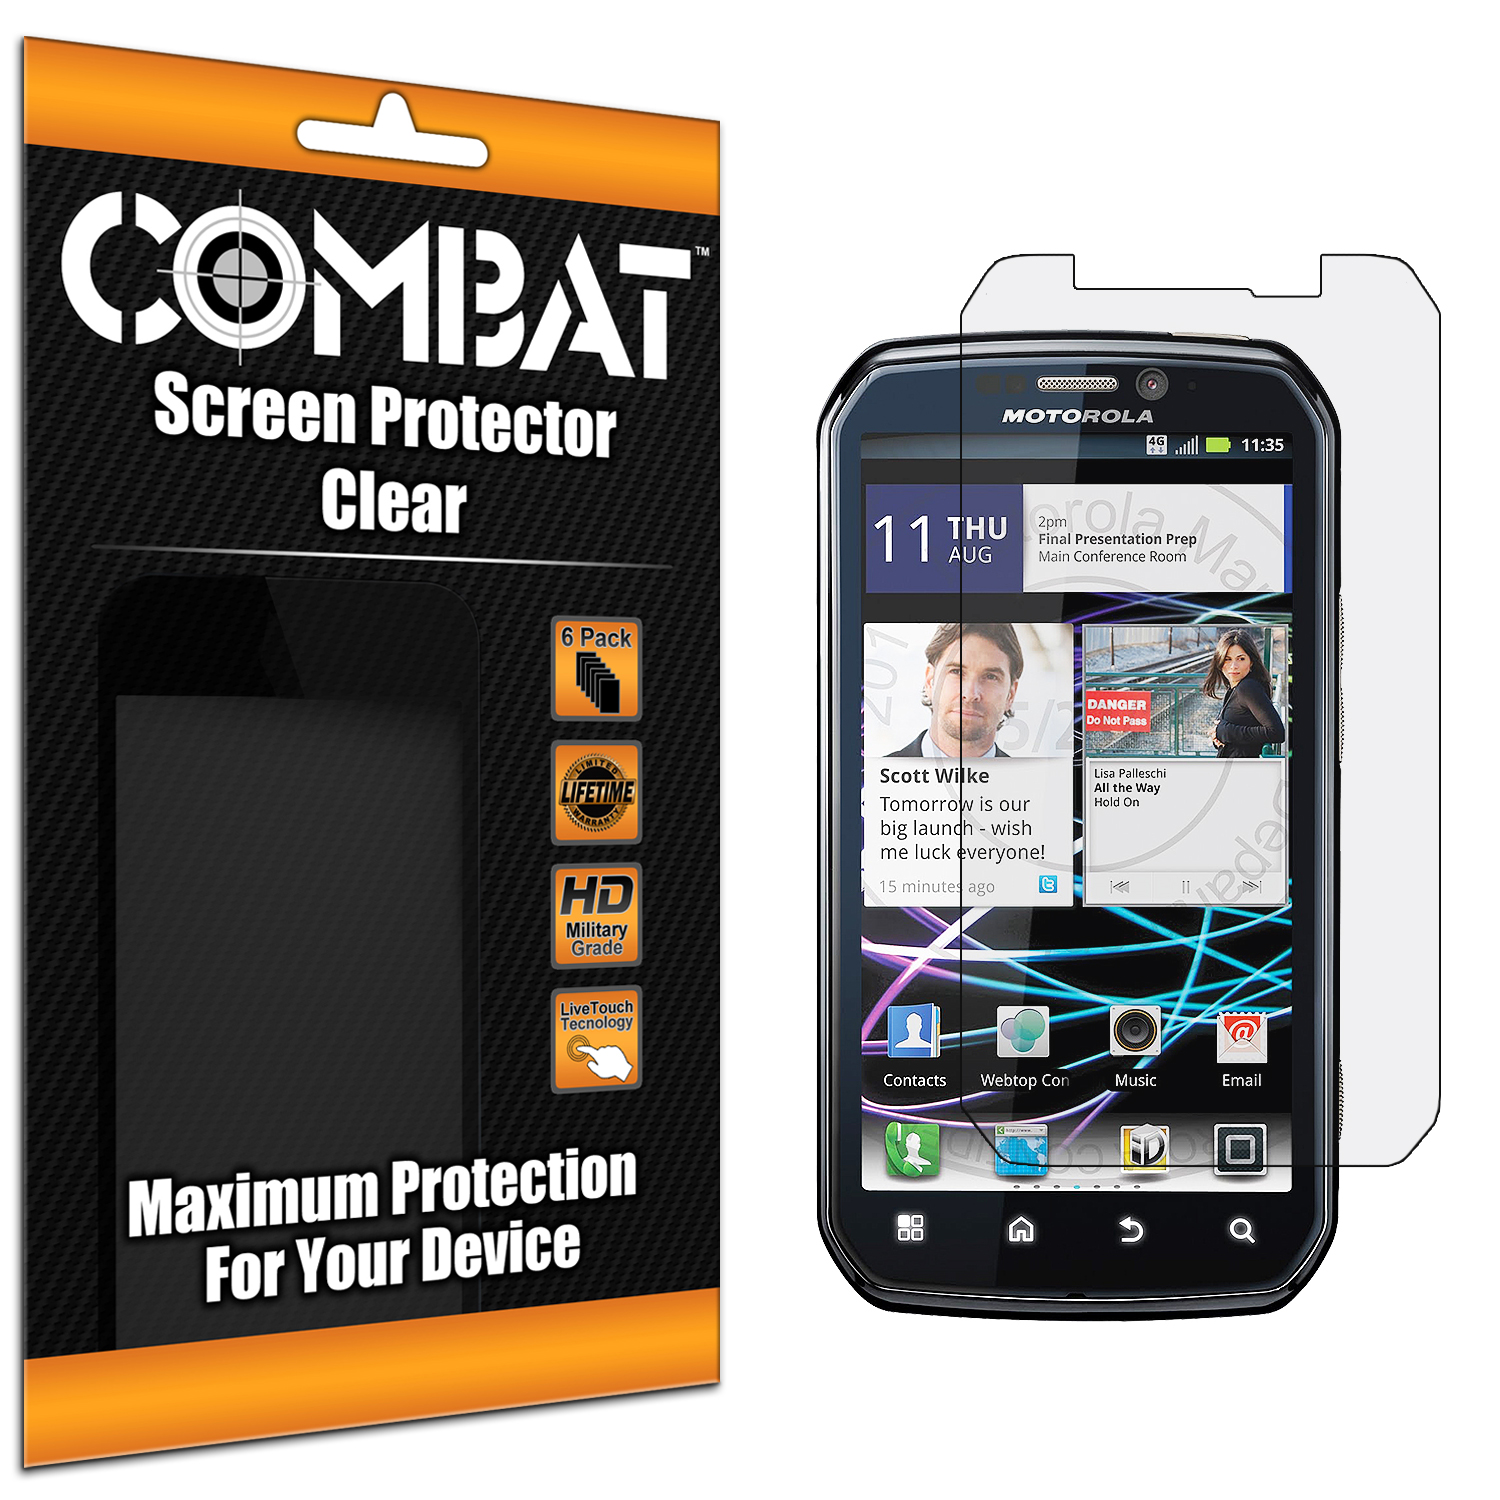 Motorola Photon 4G MB855 Combat 6 Pack HD Clear Screen Protector